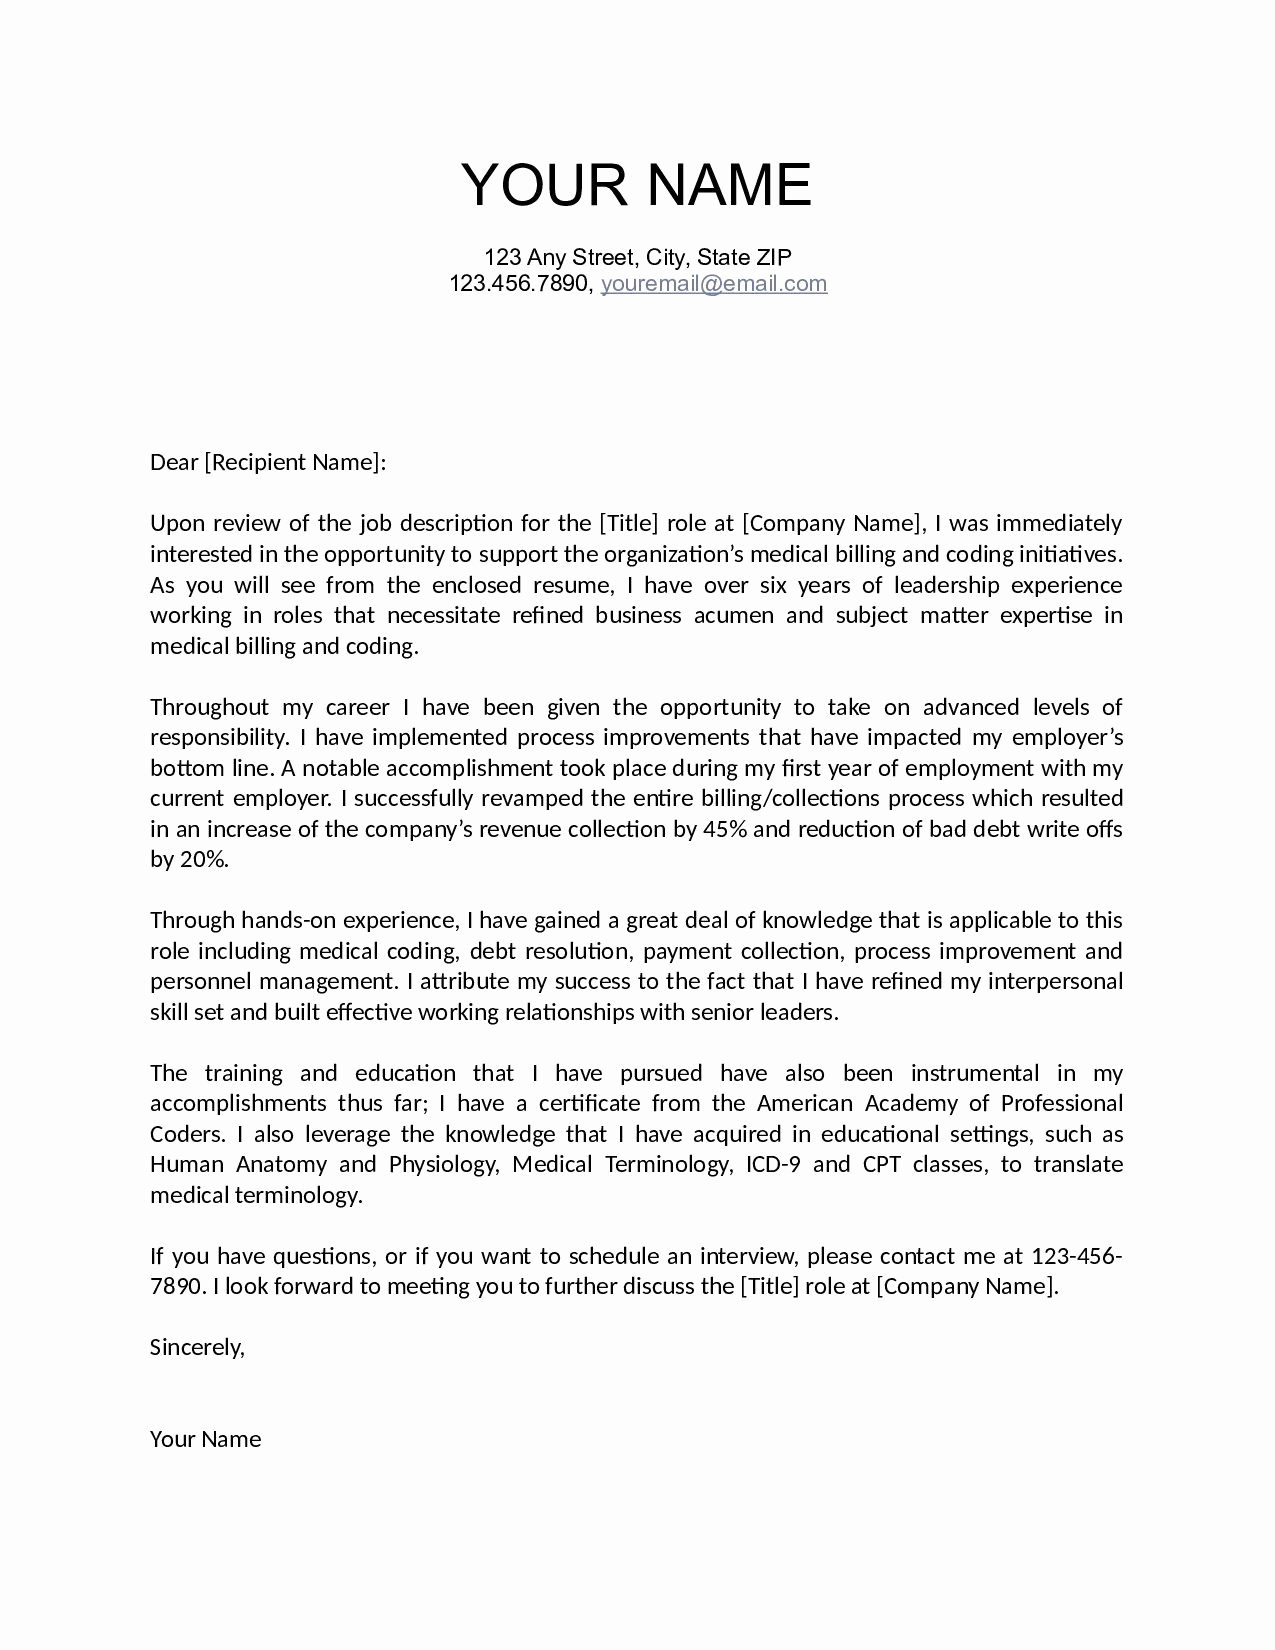 Resignation Letter Email Template - Sample Email Cover Letter with Resume New Cover Letter Template for